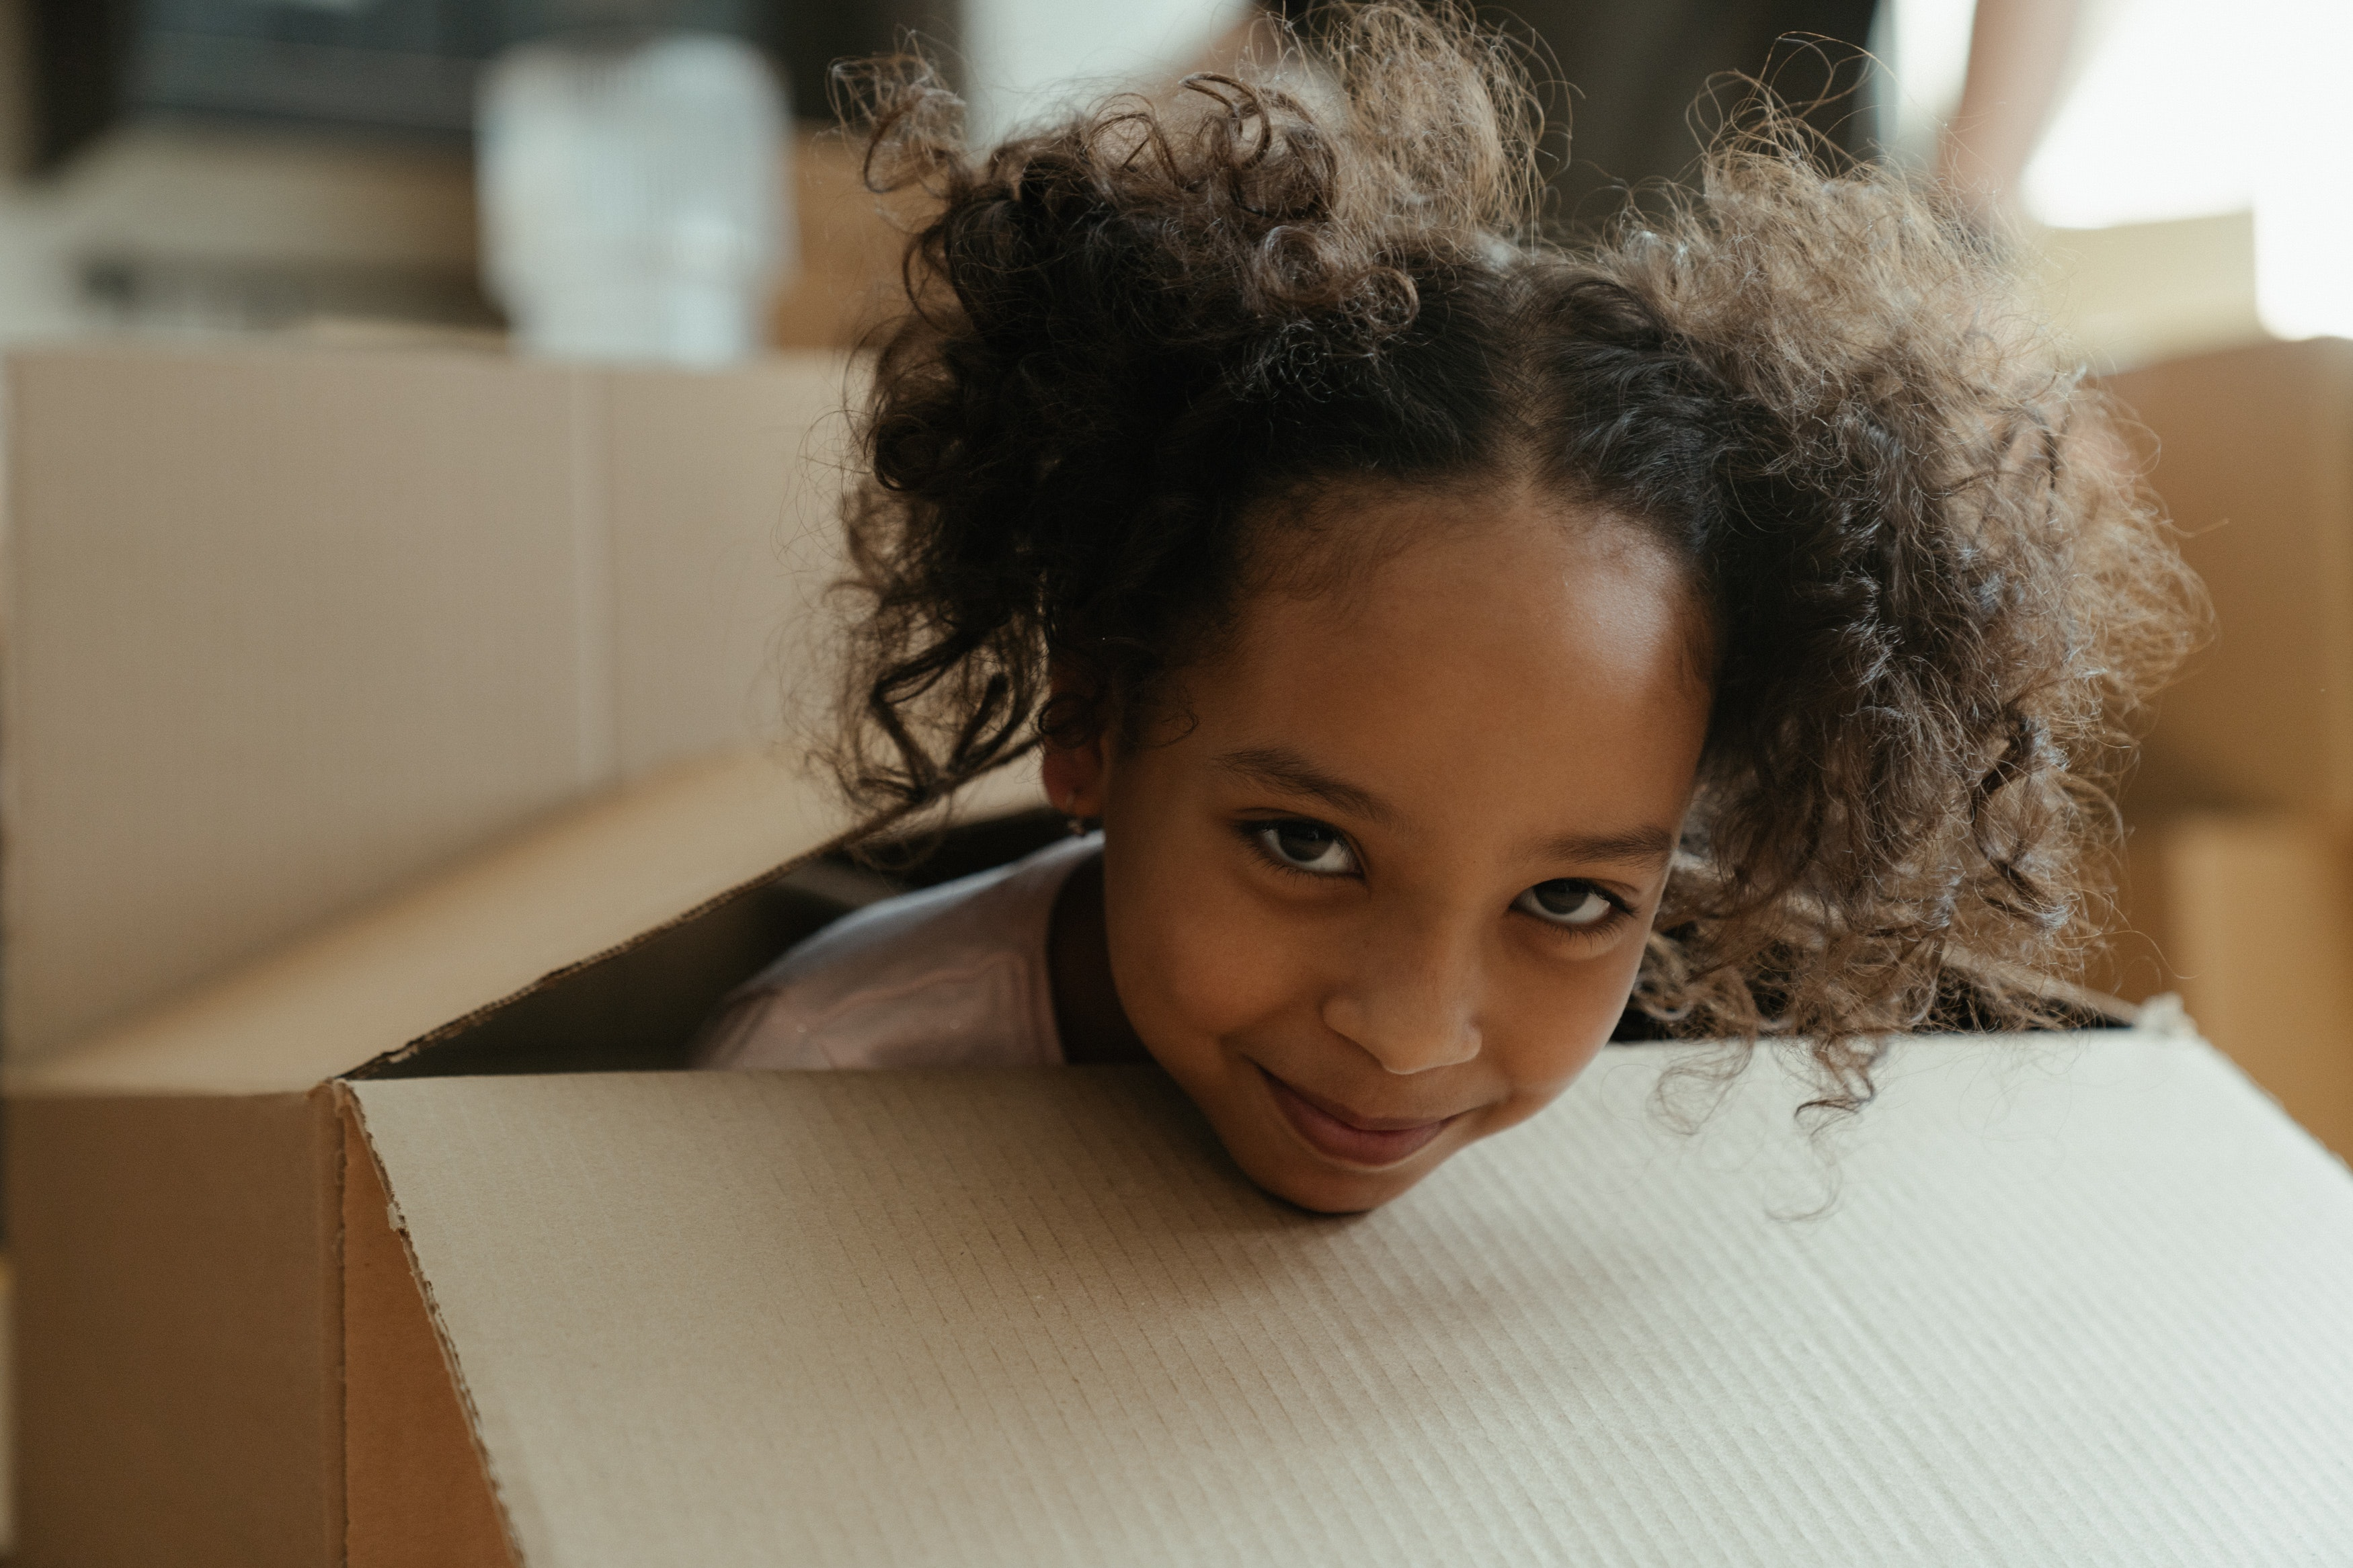 Kid is hiding in the box